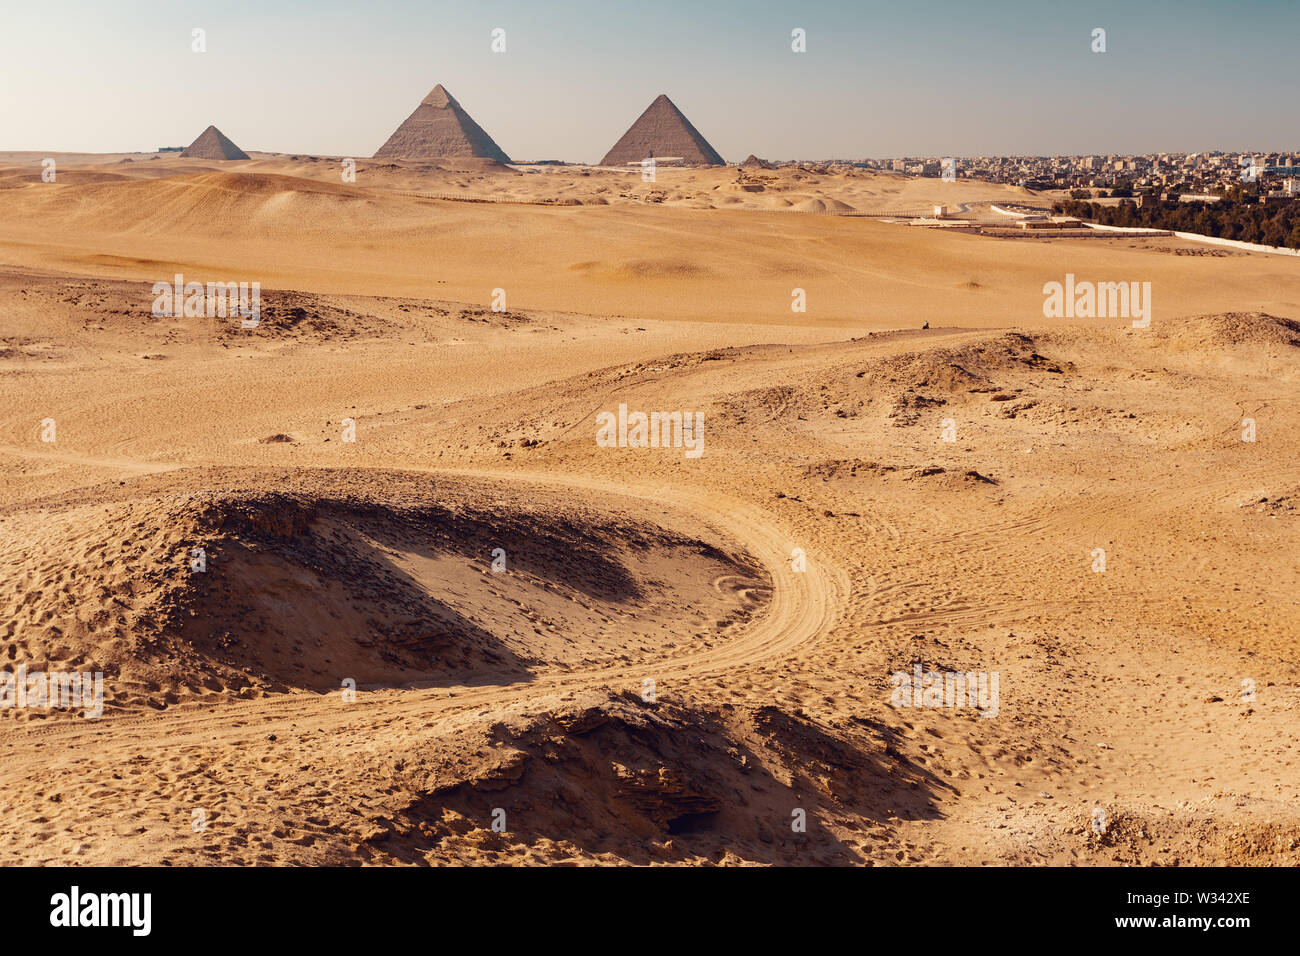 Panorama of the Great Pyramids of Giza, Egypt architecture, View from desert - Stock Image